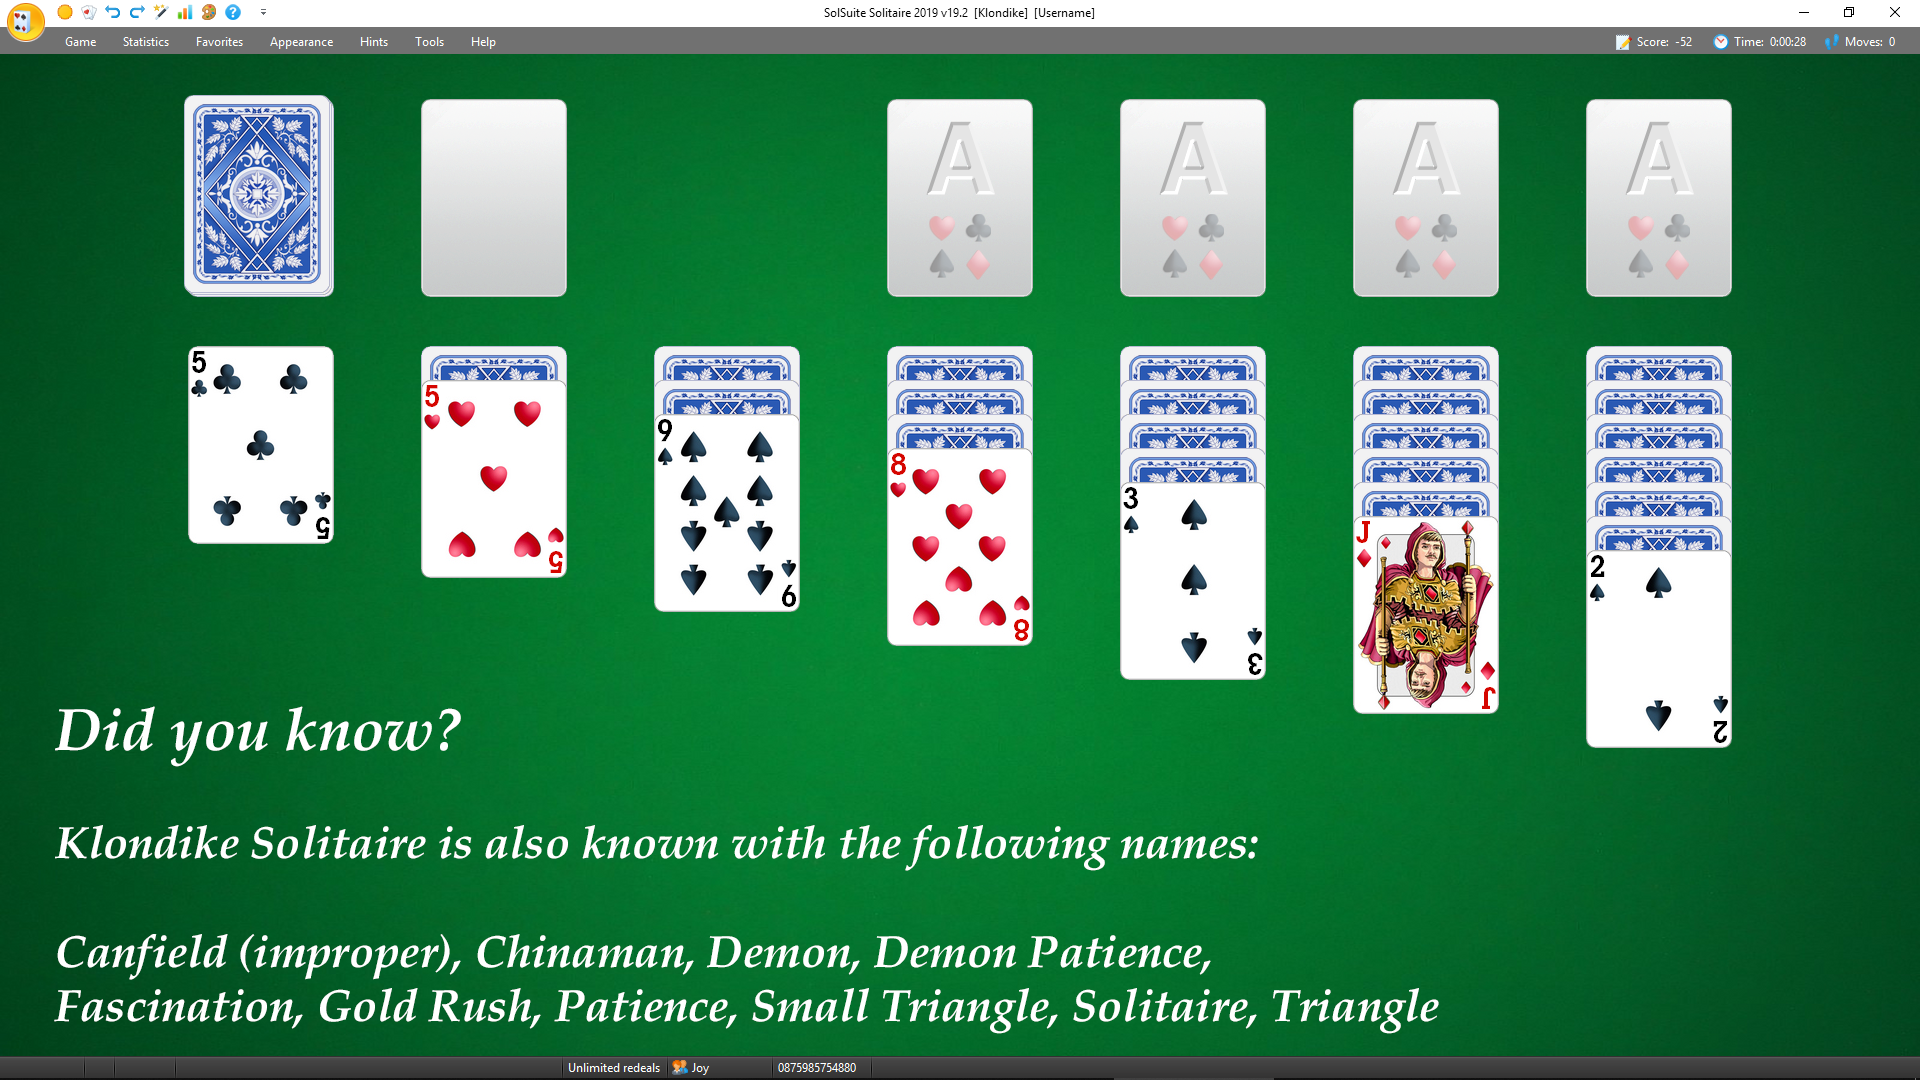 SolSuite Solitaire Klondike in 2019 Solitaire games